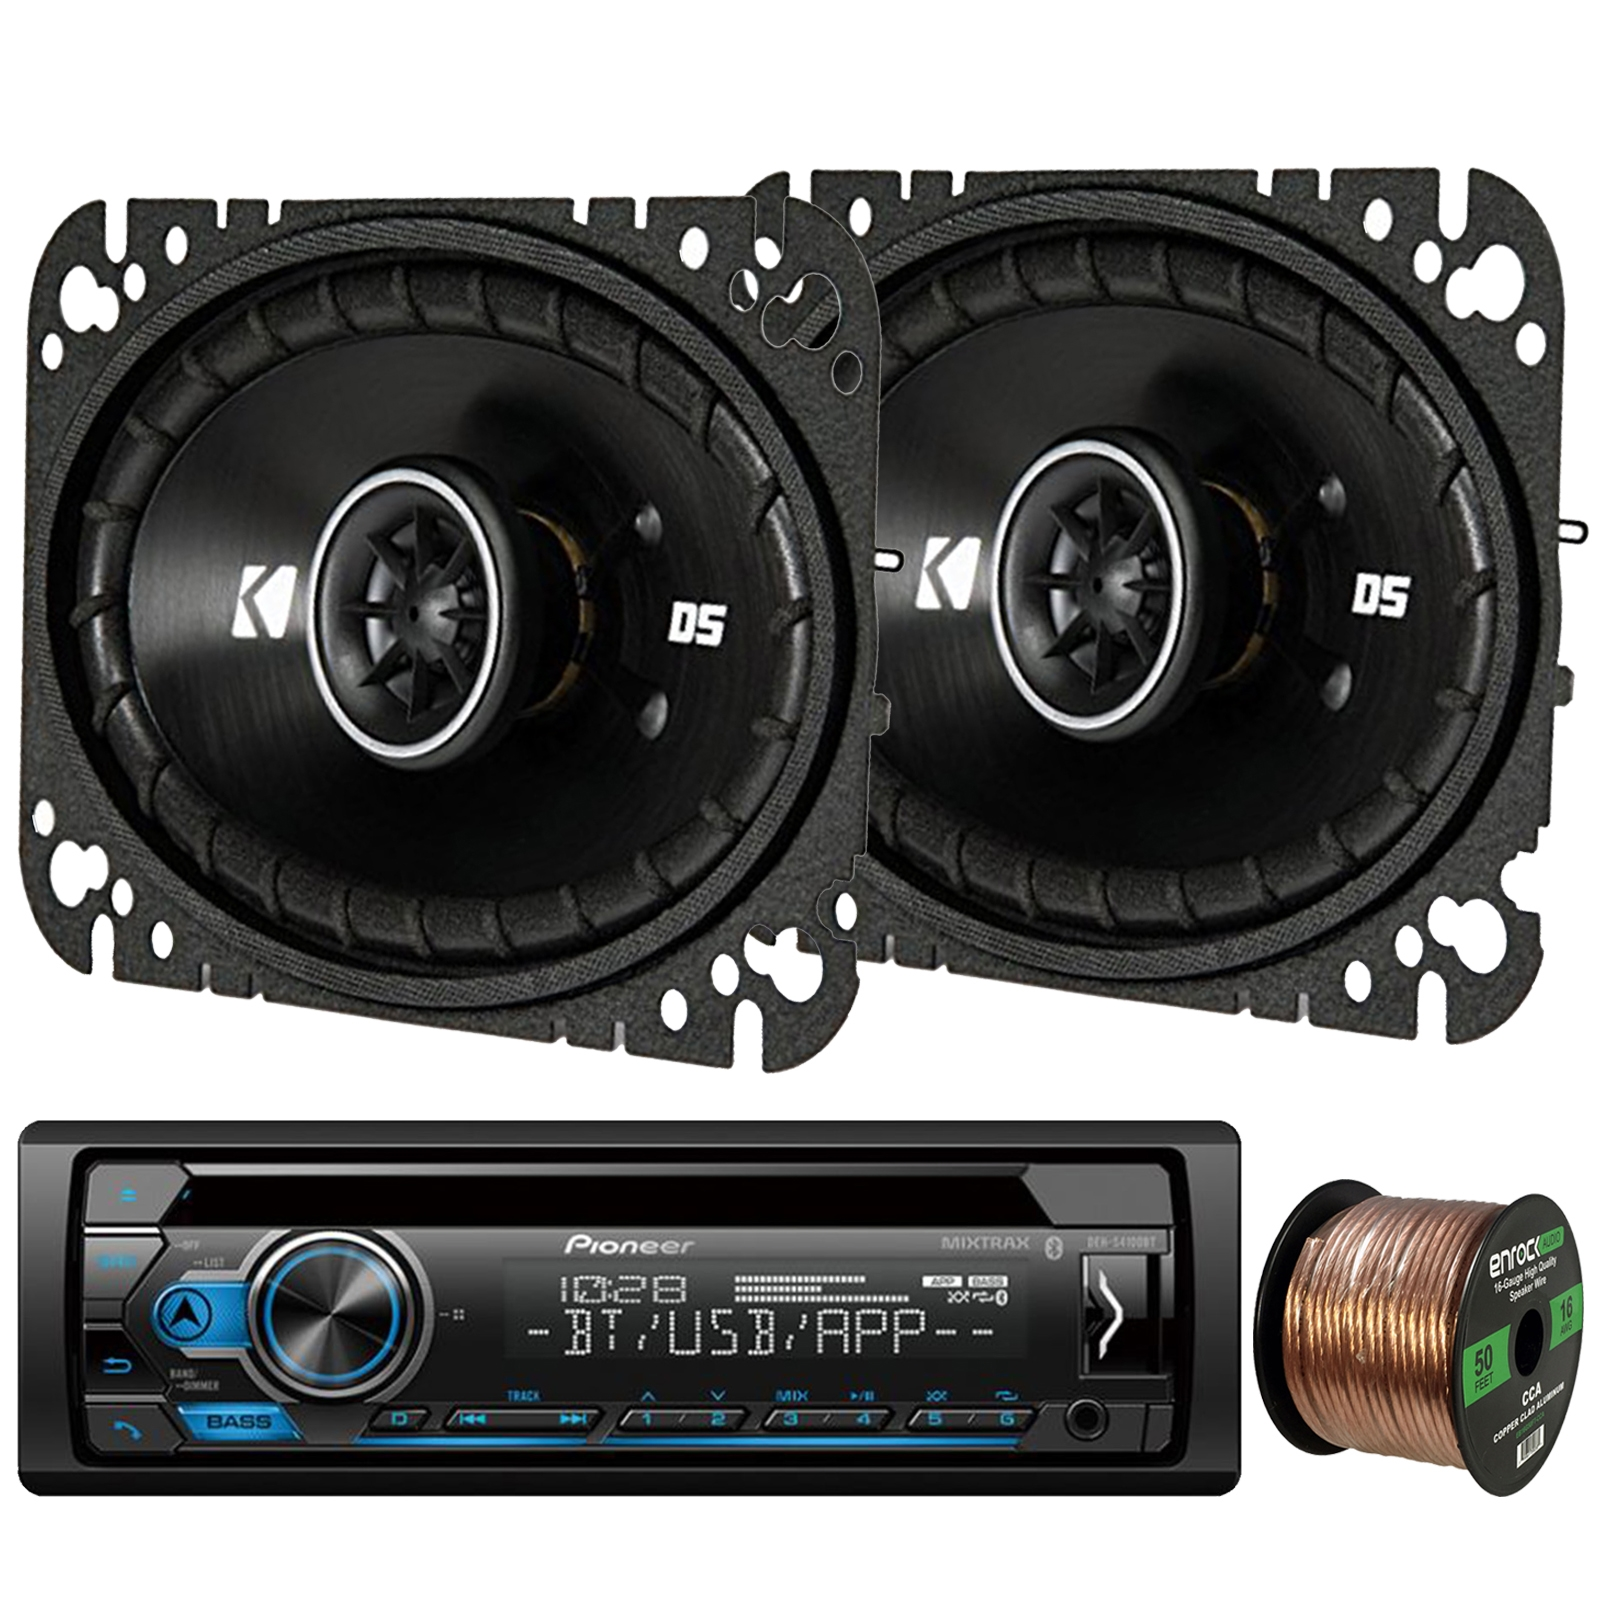 "Pioneer DEH-S4100BT In-Dash Single-DIN CD Player Bluetooth Receiver, 2 x Kicker 43DSC4604 DS-Series 4x6"" 240-Watt 4-Ohm 2-Way Car Coaxial Speakers, 16-Gauge 50Ft. Speaker Wire"